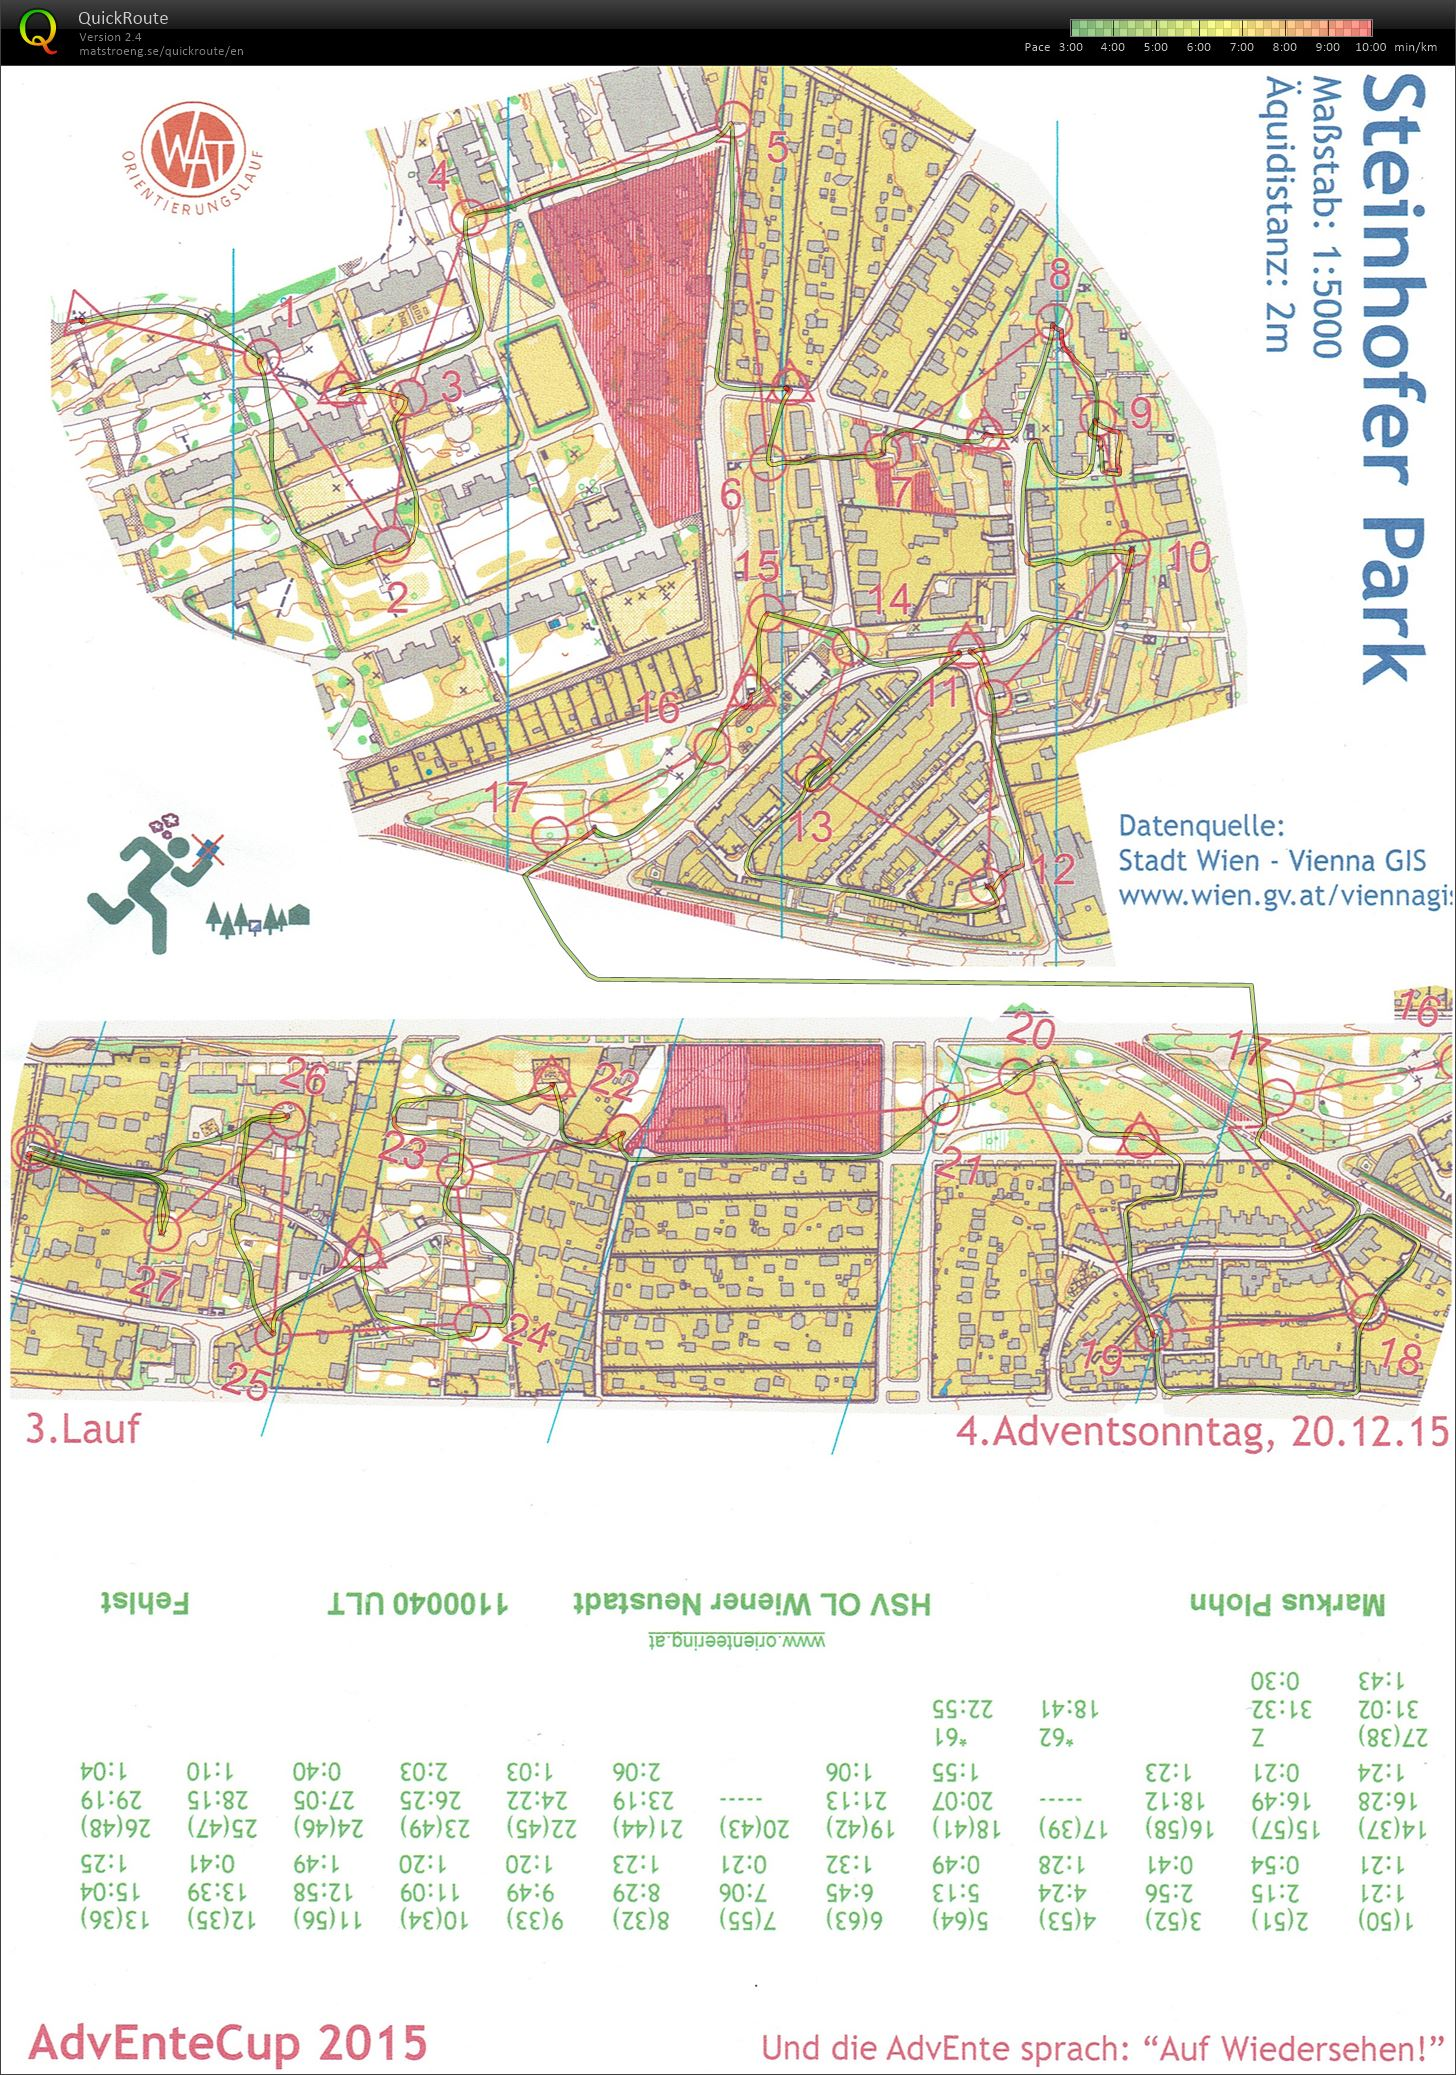 Advent Cup, 3. Lauf (20.12.2015)